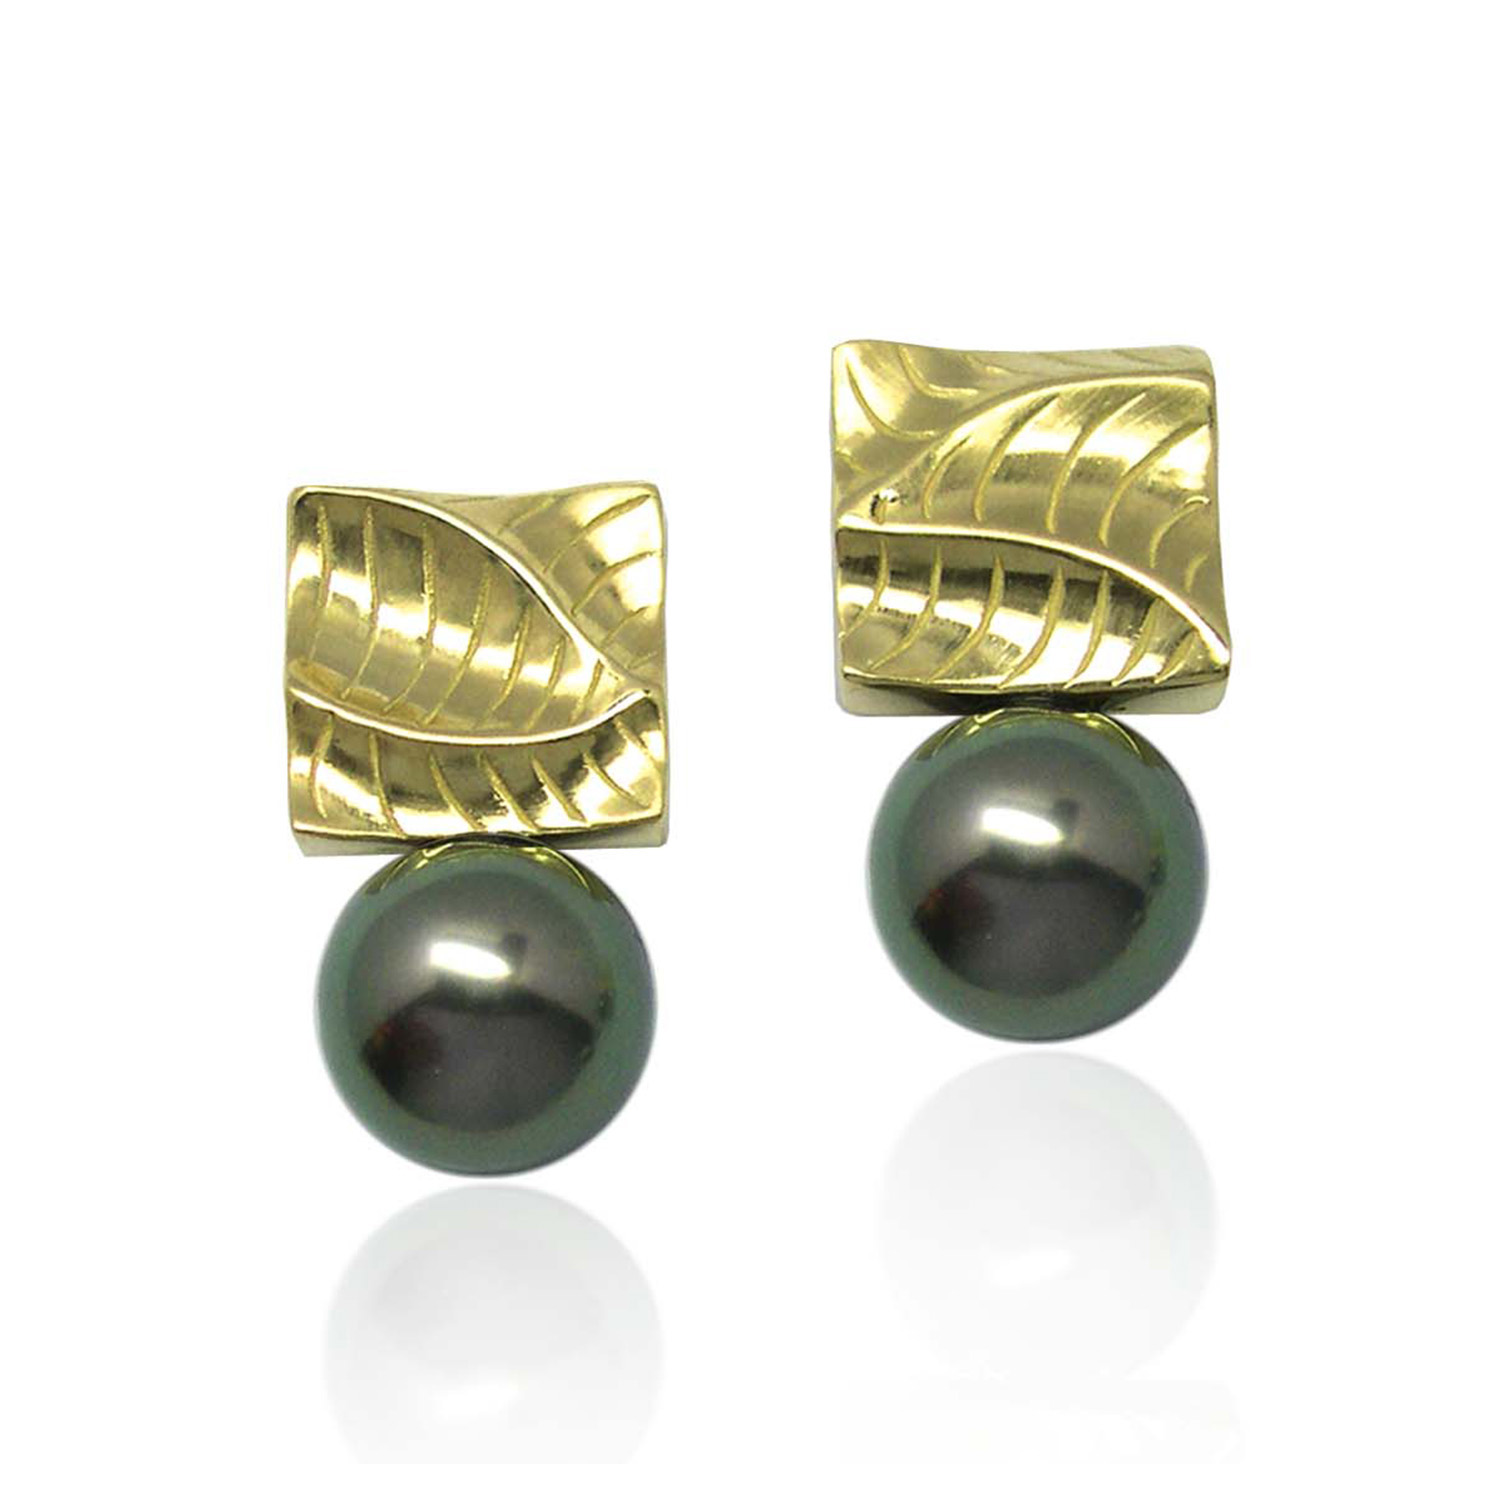 Small Square Pearl Earrings from K.Mita